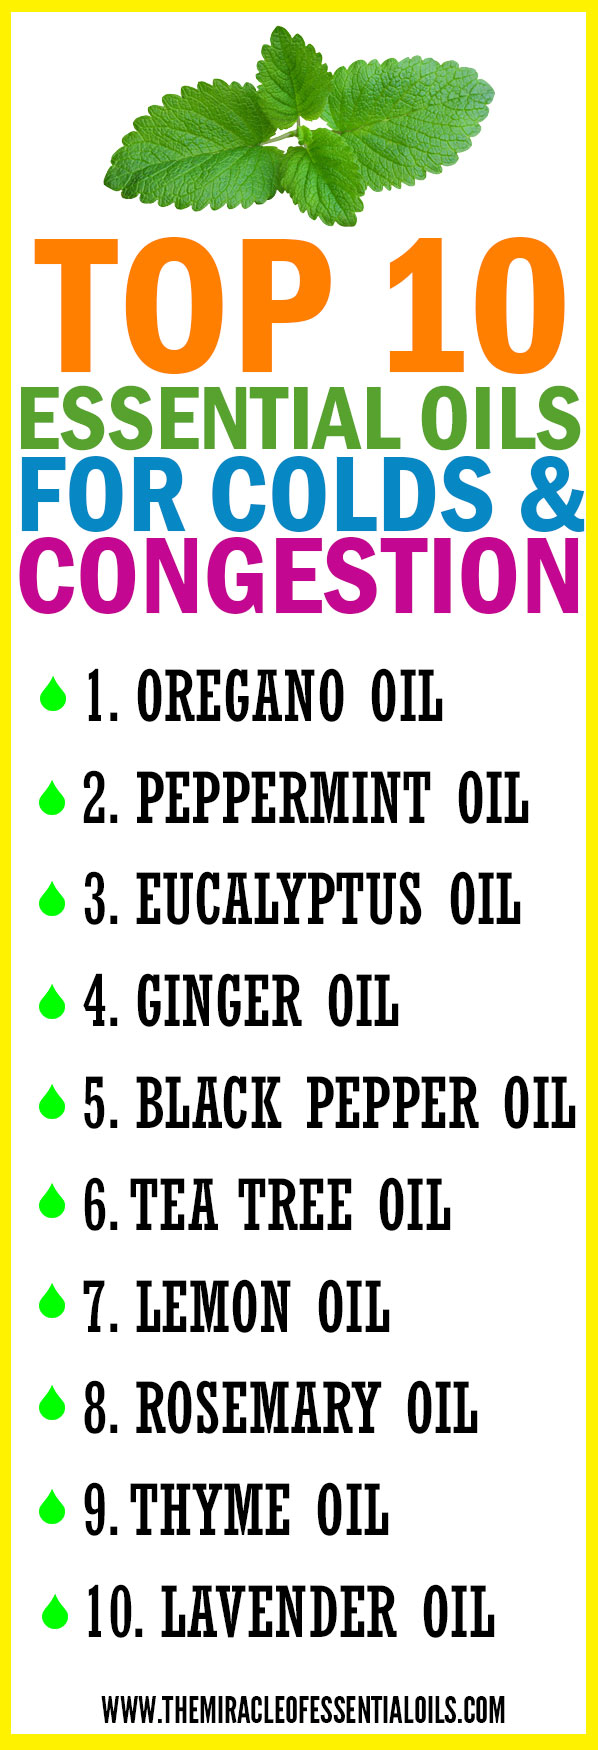 Top 10 Essential Oils for Colds and Congestion